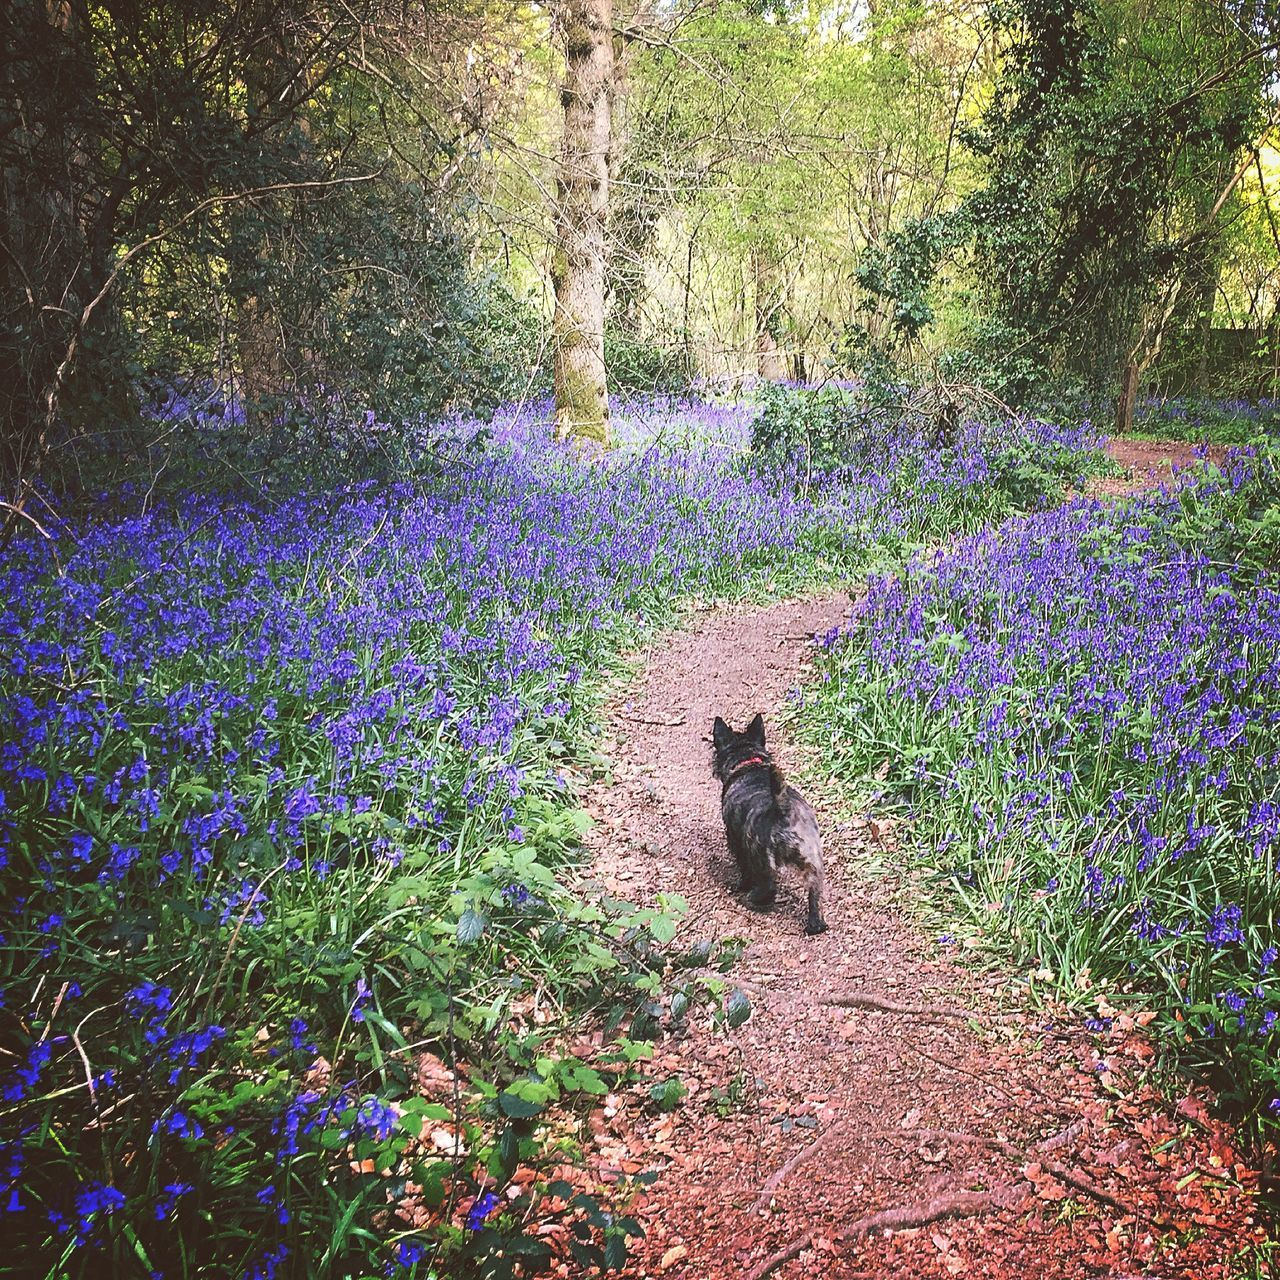 Purple Nature Animal Themes Growth Beauty In Nature Flower Plant One Animal Outdoors Mammal Tree No People Day Field Freshness Woods Forrest Bluebells Spring Bluebell Wood Dog Walk Flowers Springtime Spring Flowers